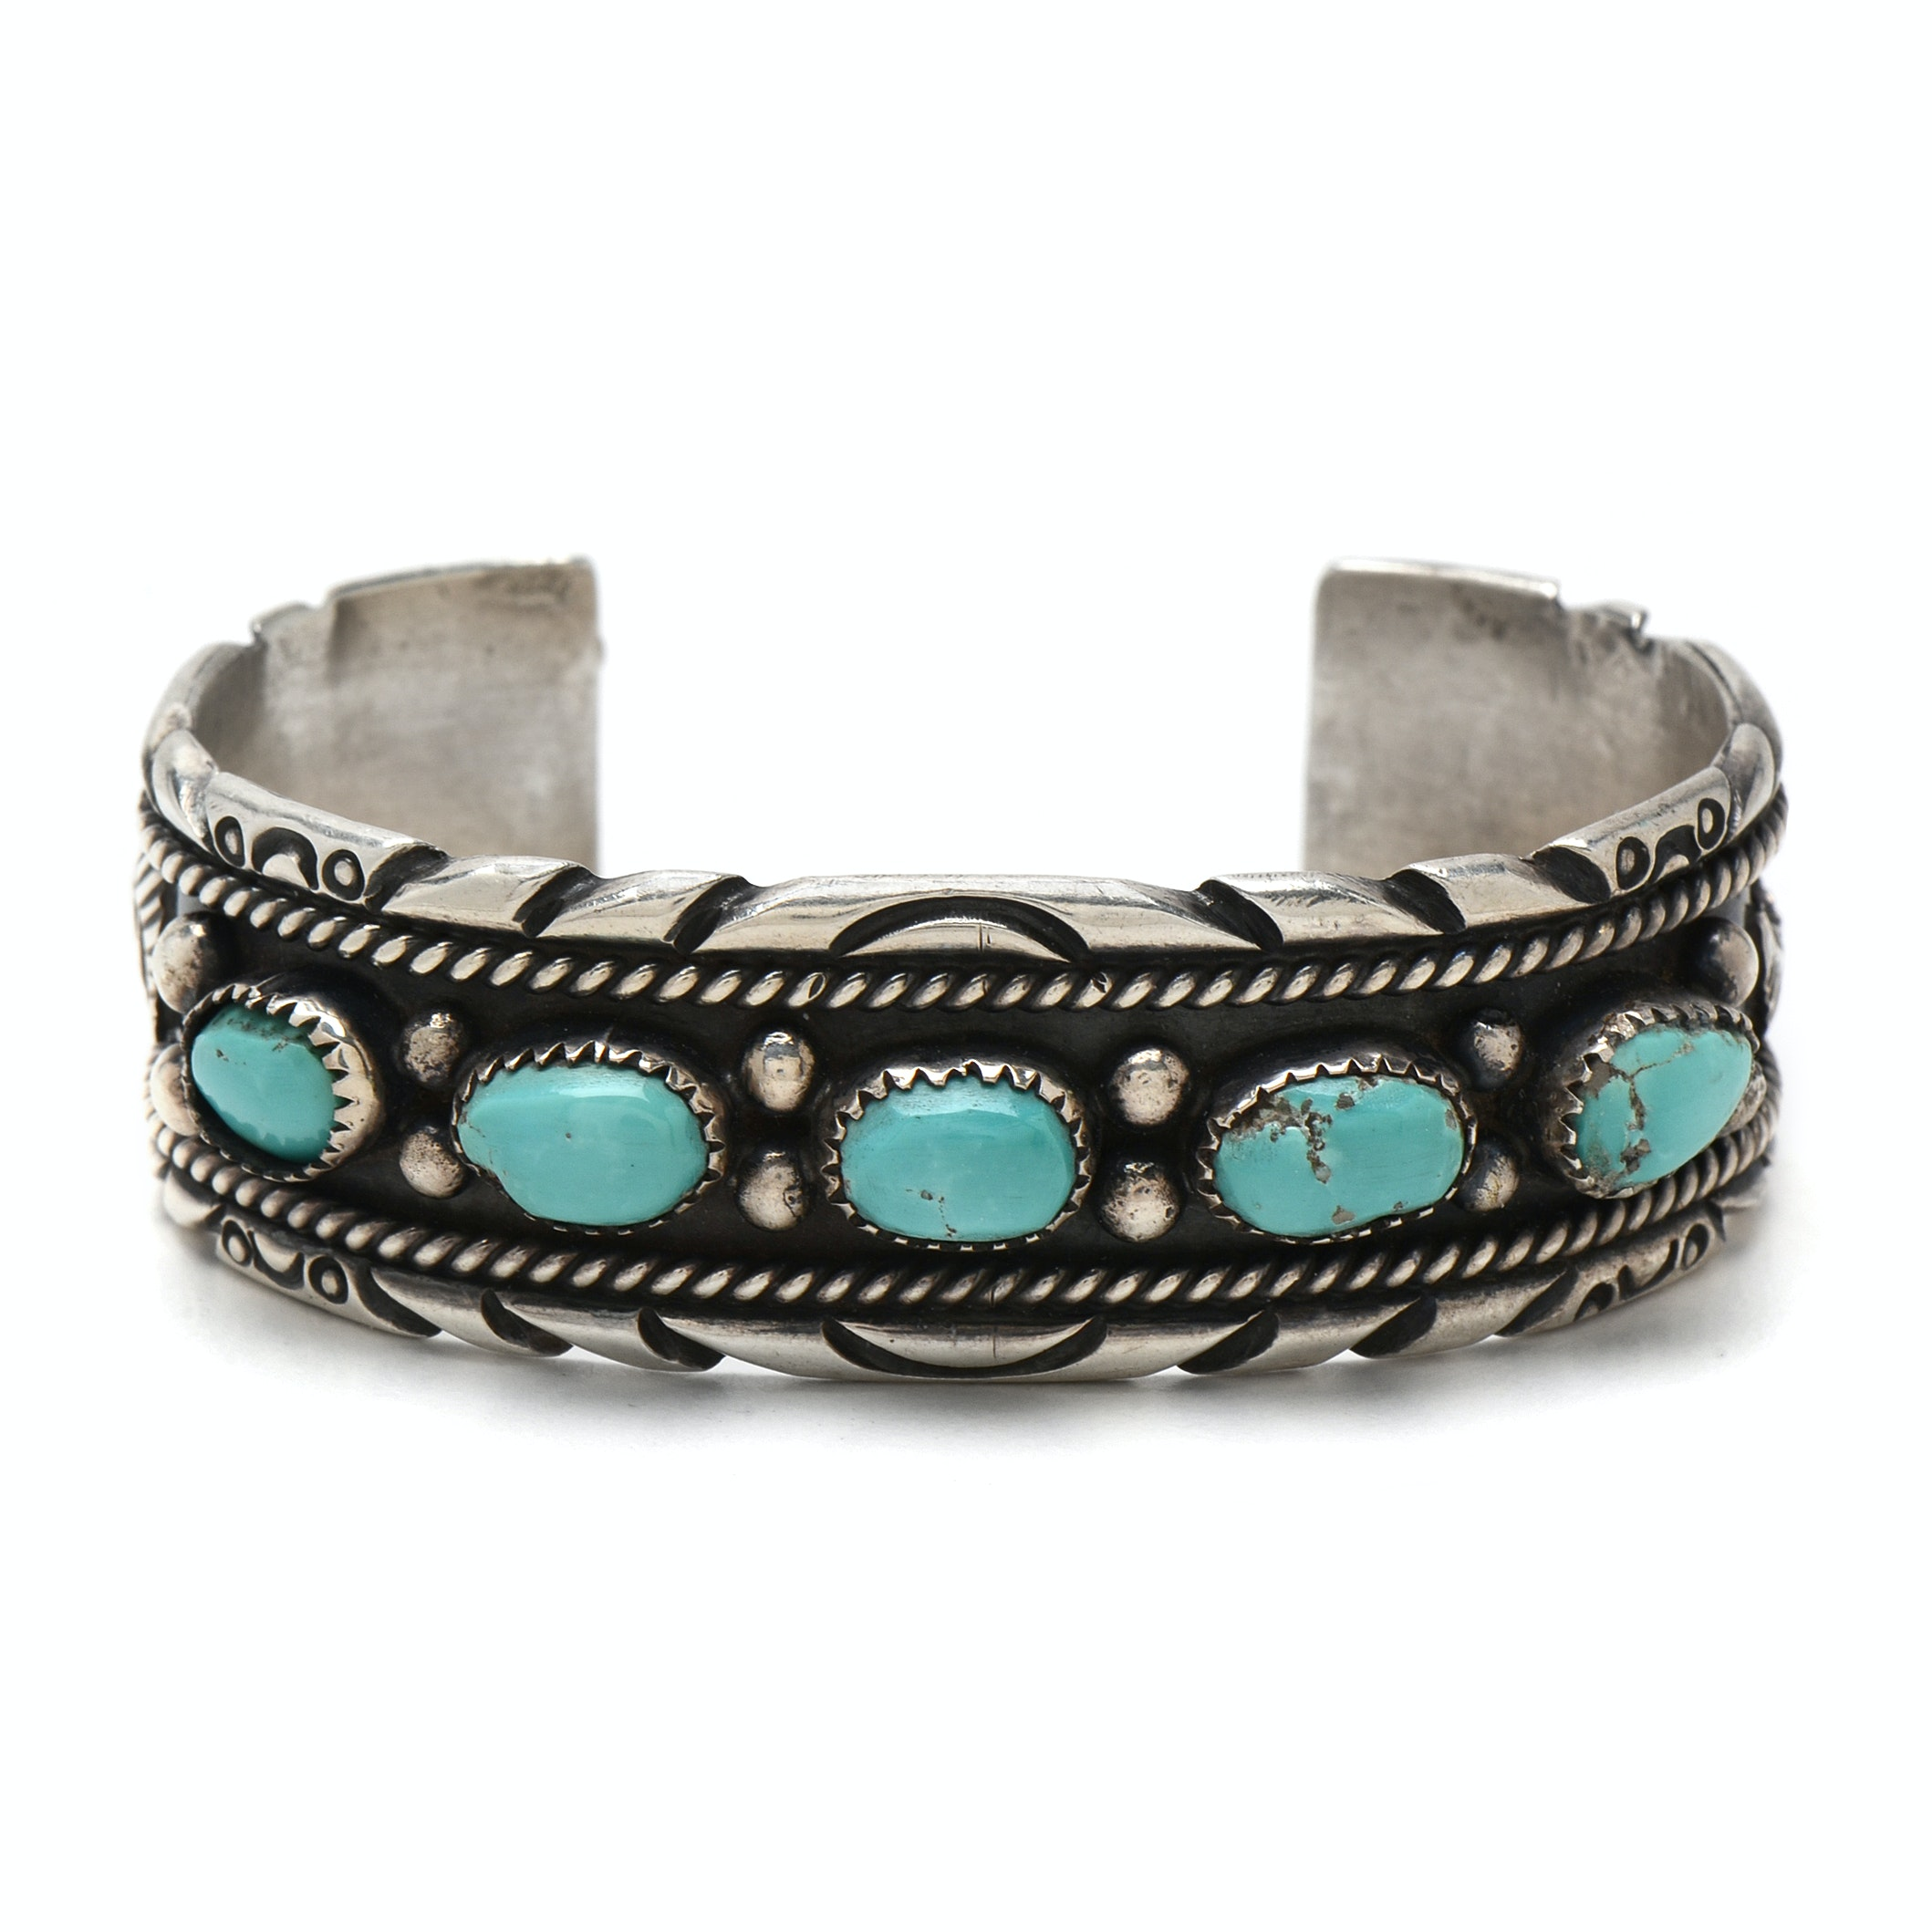 Navajo C. Johnson Hand-Made Sterling Silver Turquoise Cuff Bracelet